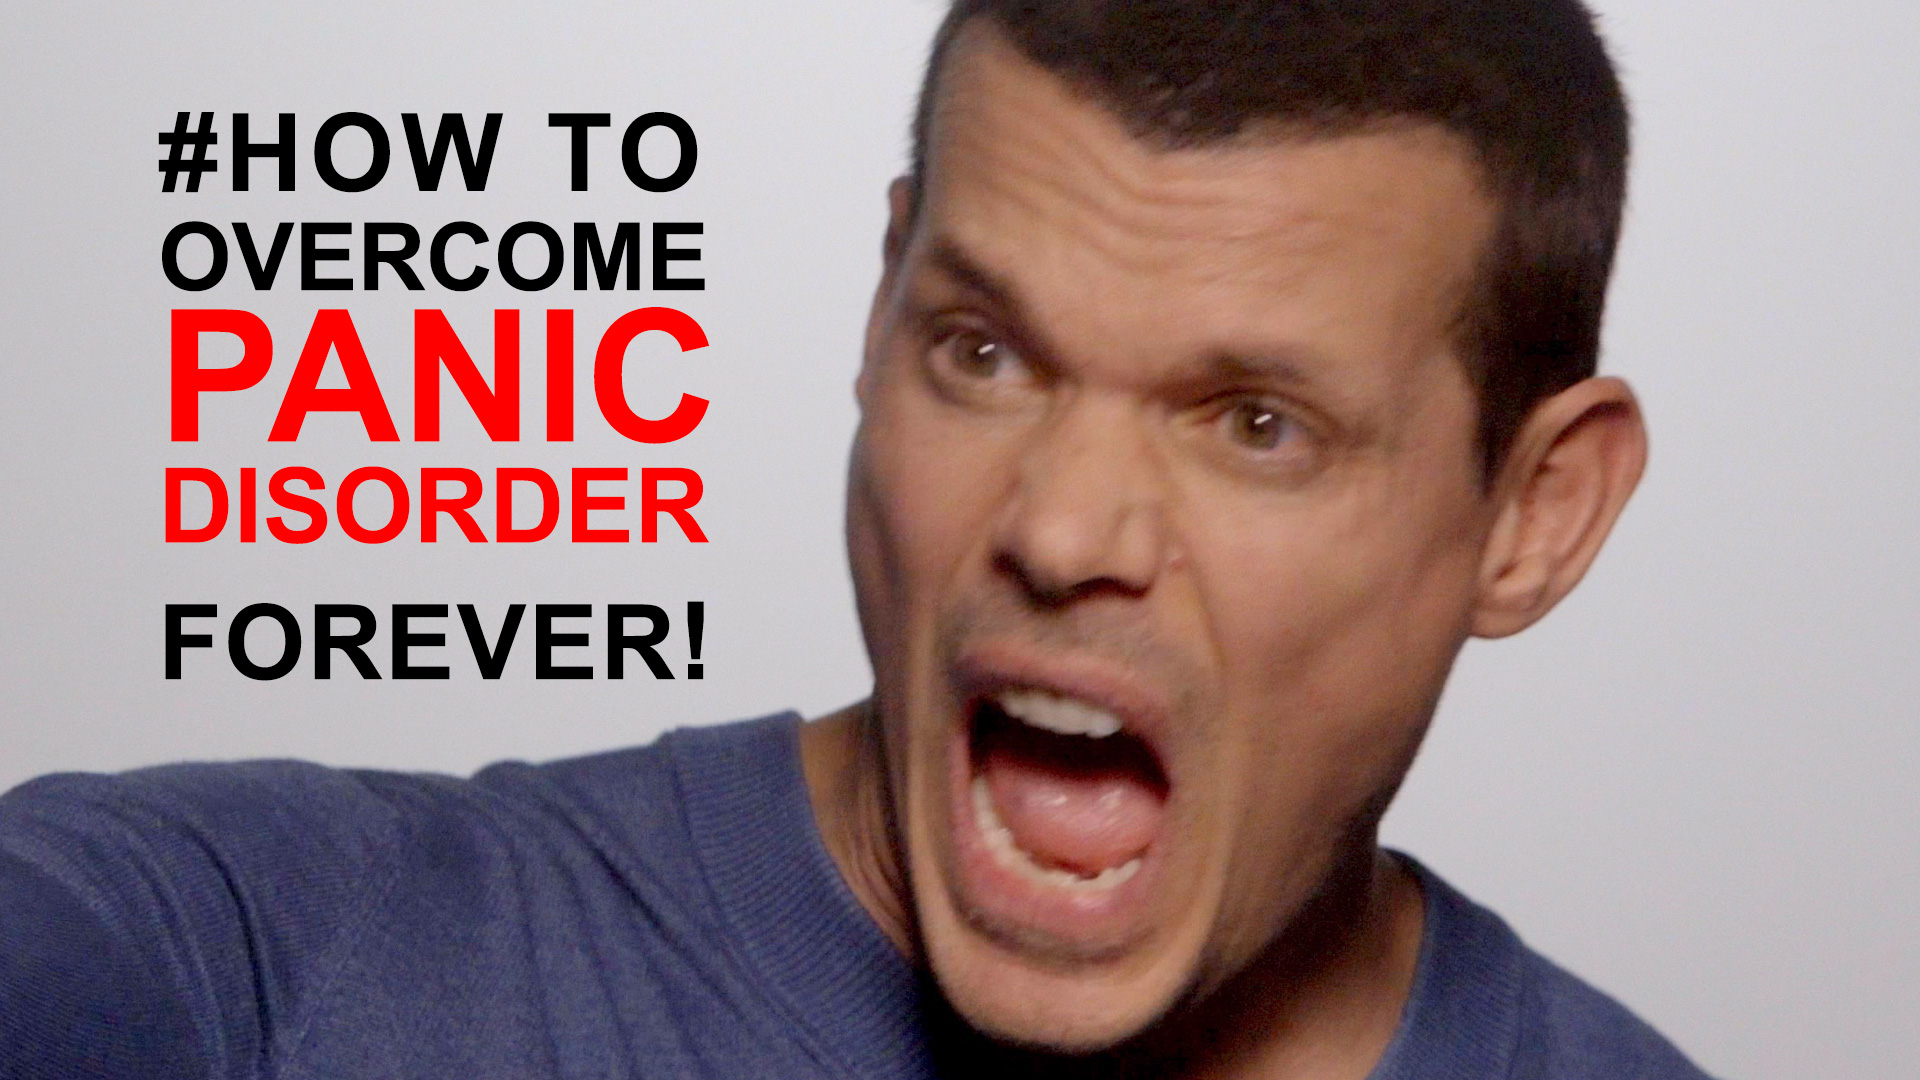 How to overcome a panic disorder: #1 TIP TO STOP PANIC FOREVER